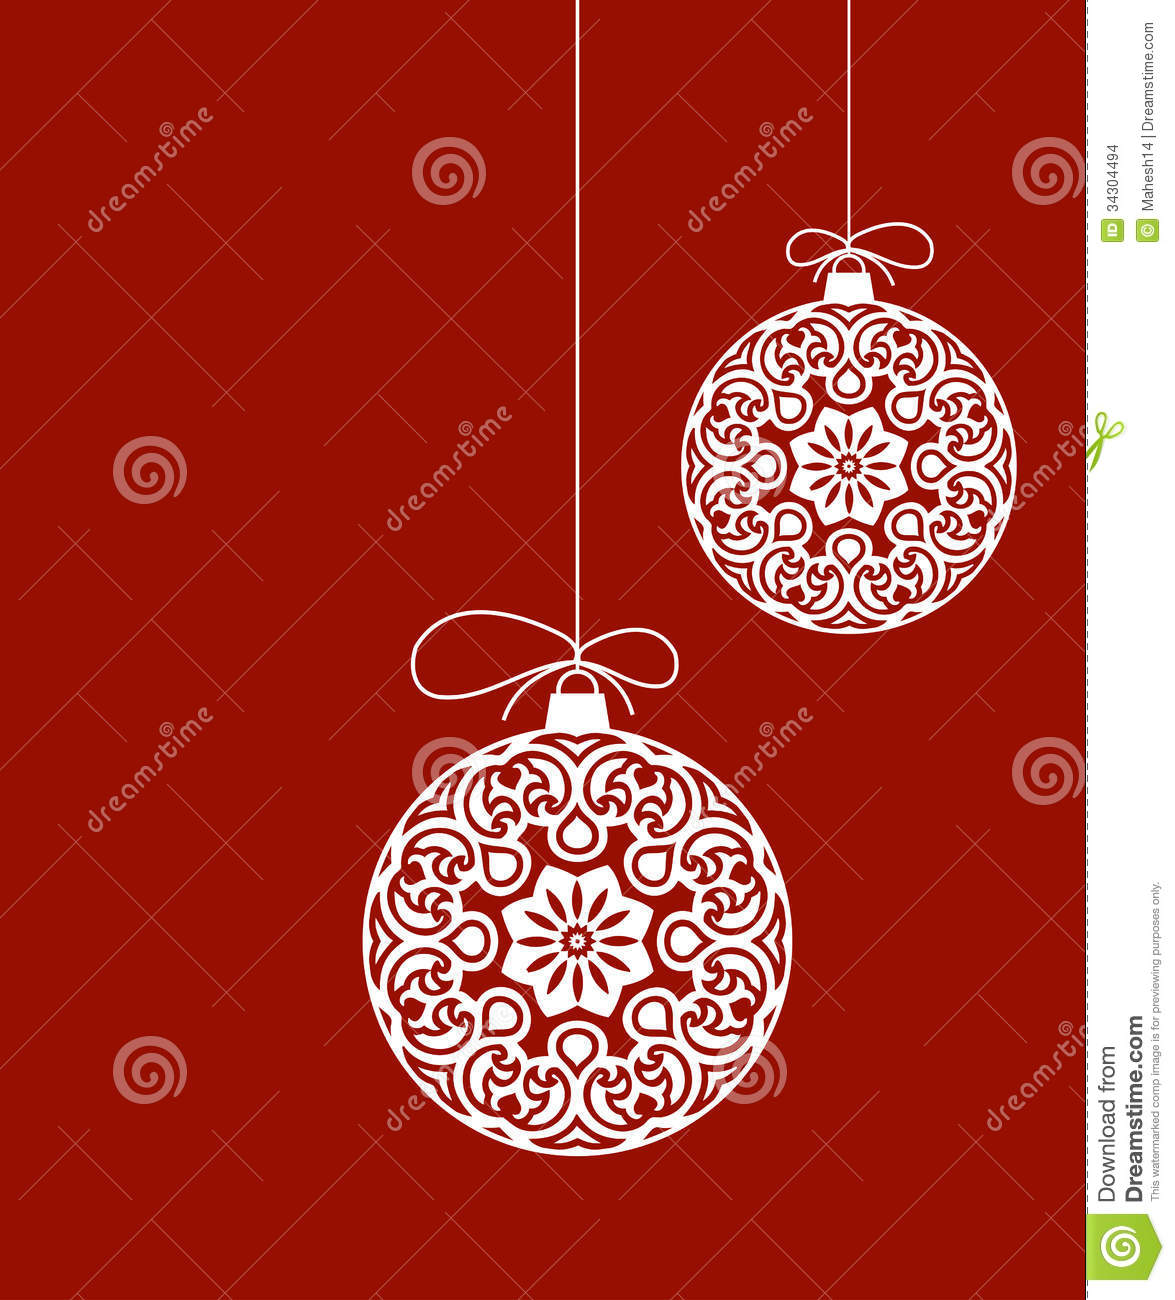 Decorative Christmas Ornaments Stock Vector Illustration Of